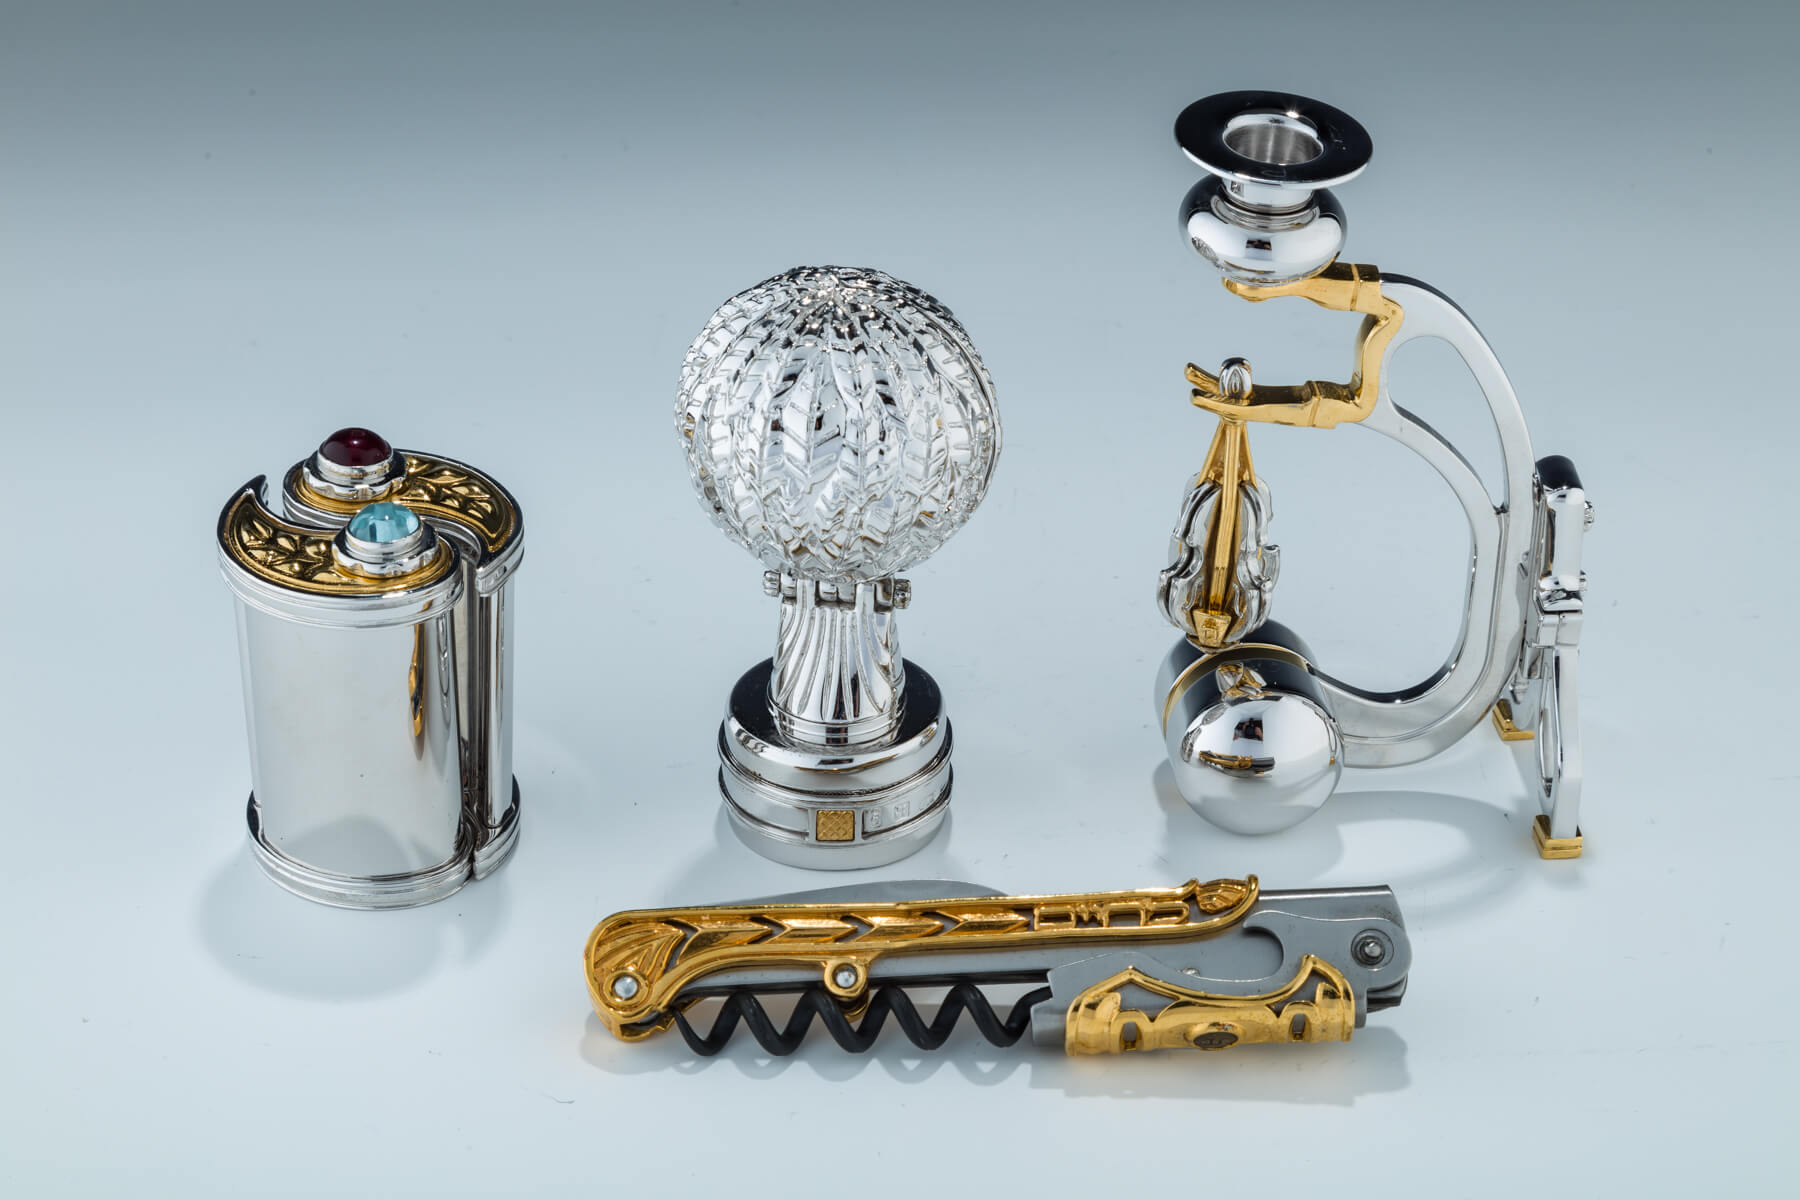 98. A Group Of Four Judaica Items By Swed Master Silversmiths